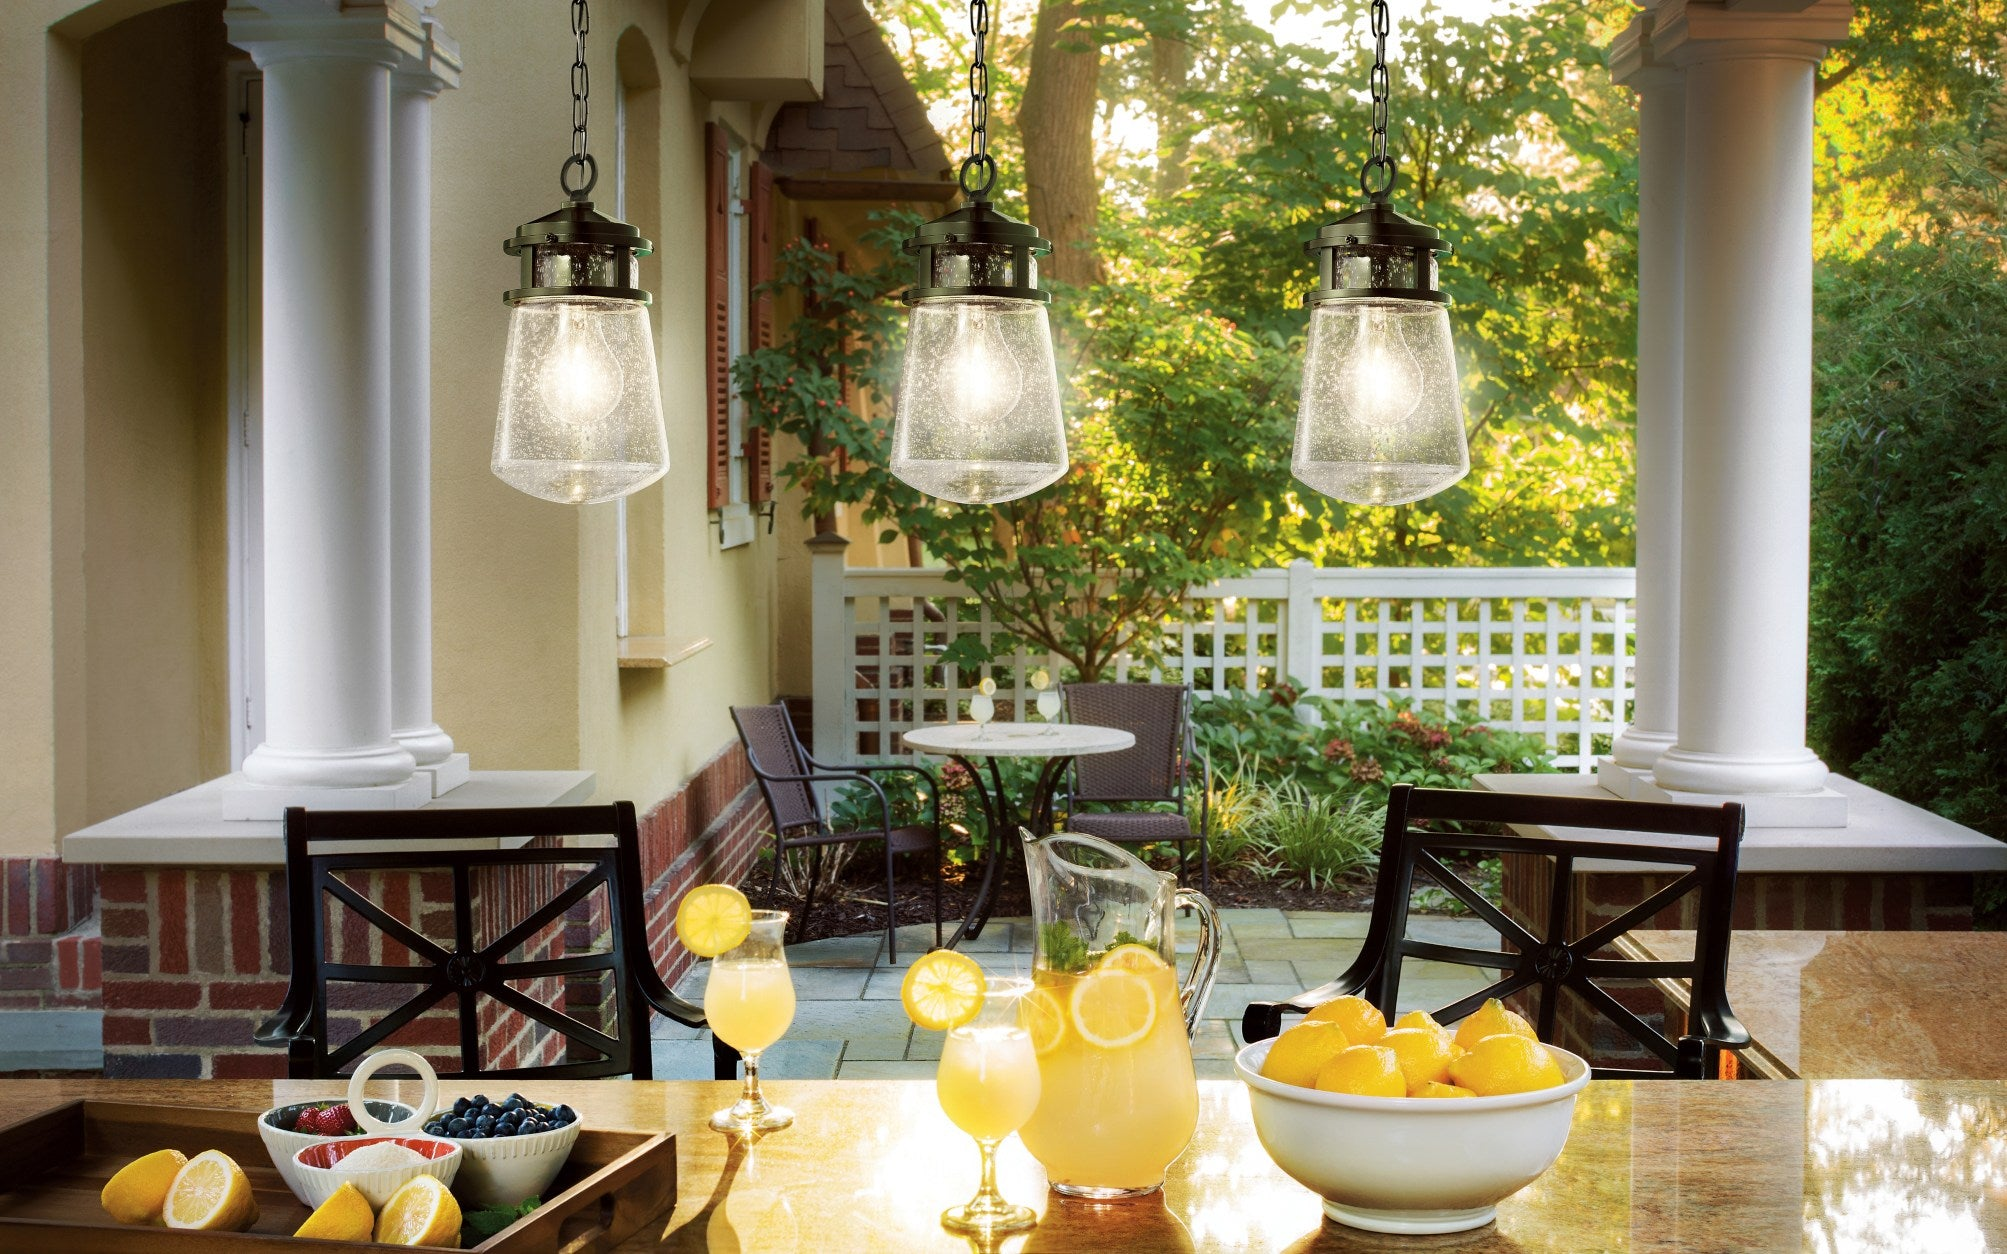 Illuminate your garden space for evening soirées - Outdoor Dining Ideas - LuxDeco Style Guide